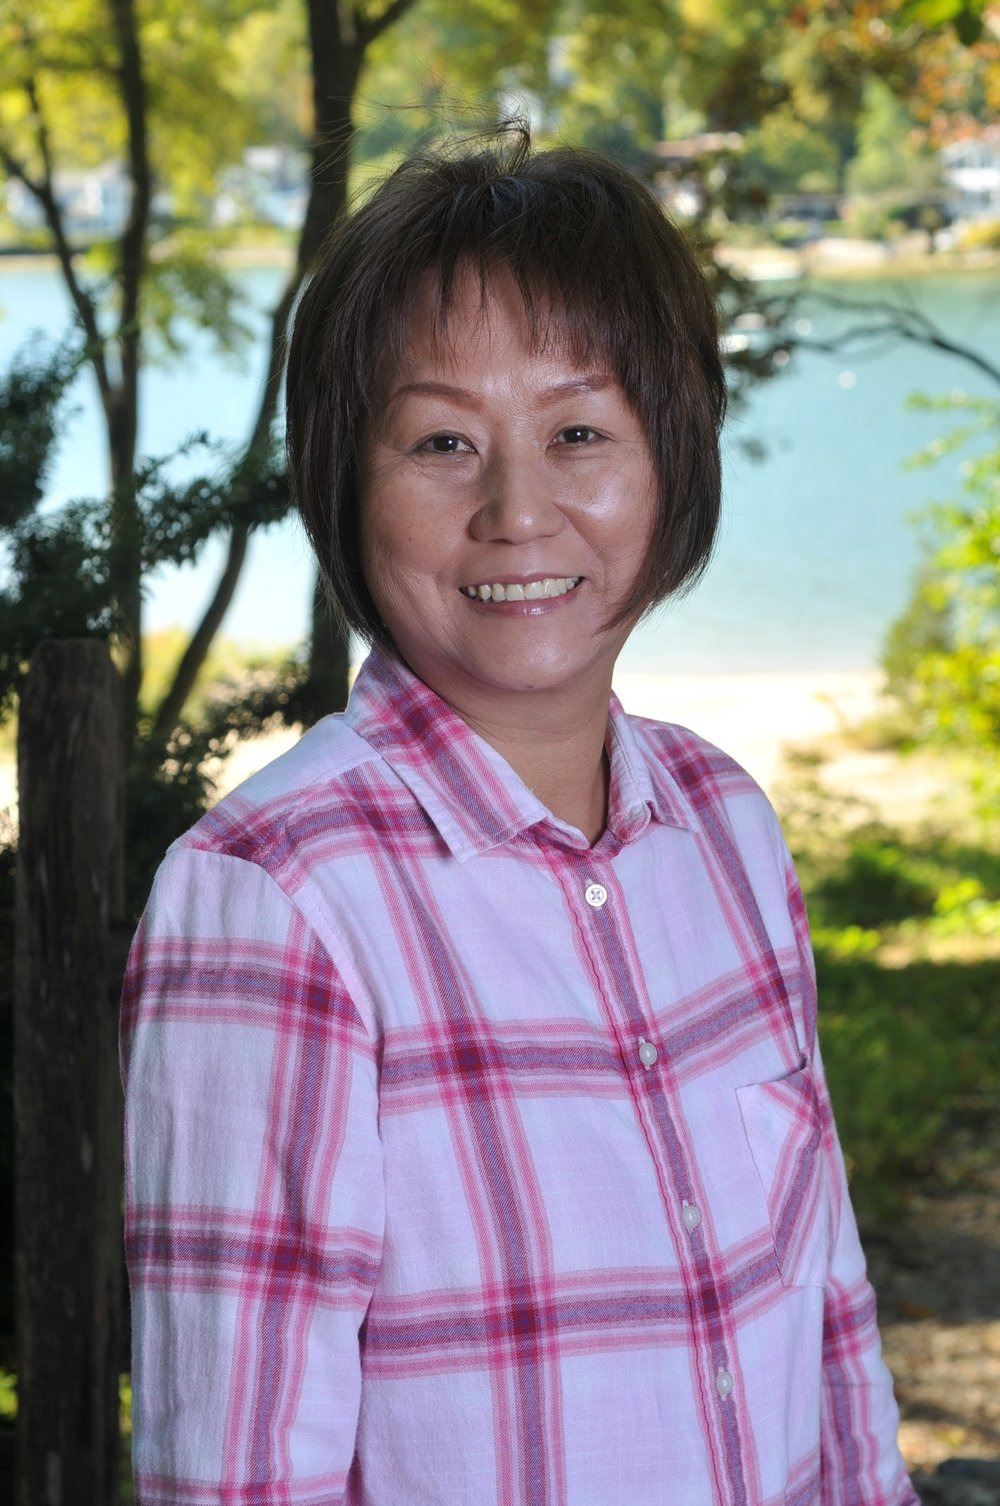 Atsuko Inoue, Assistant Teacher    years at lol:  15 years   experience:  18 years classroom experience   find me at harborside campus